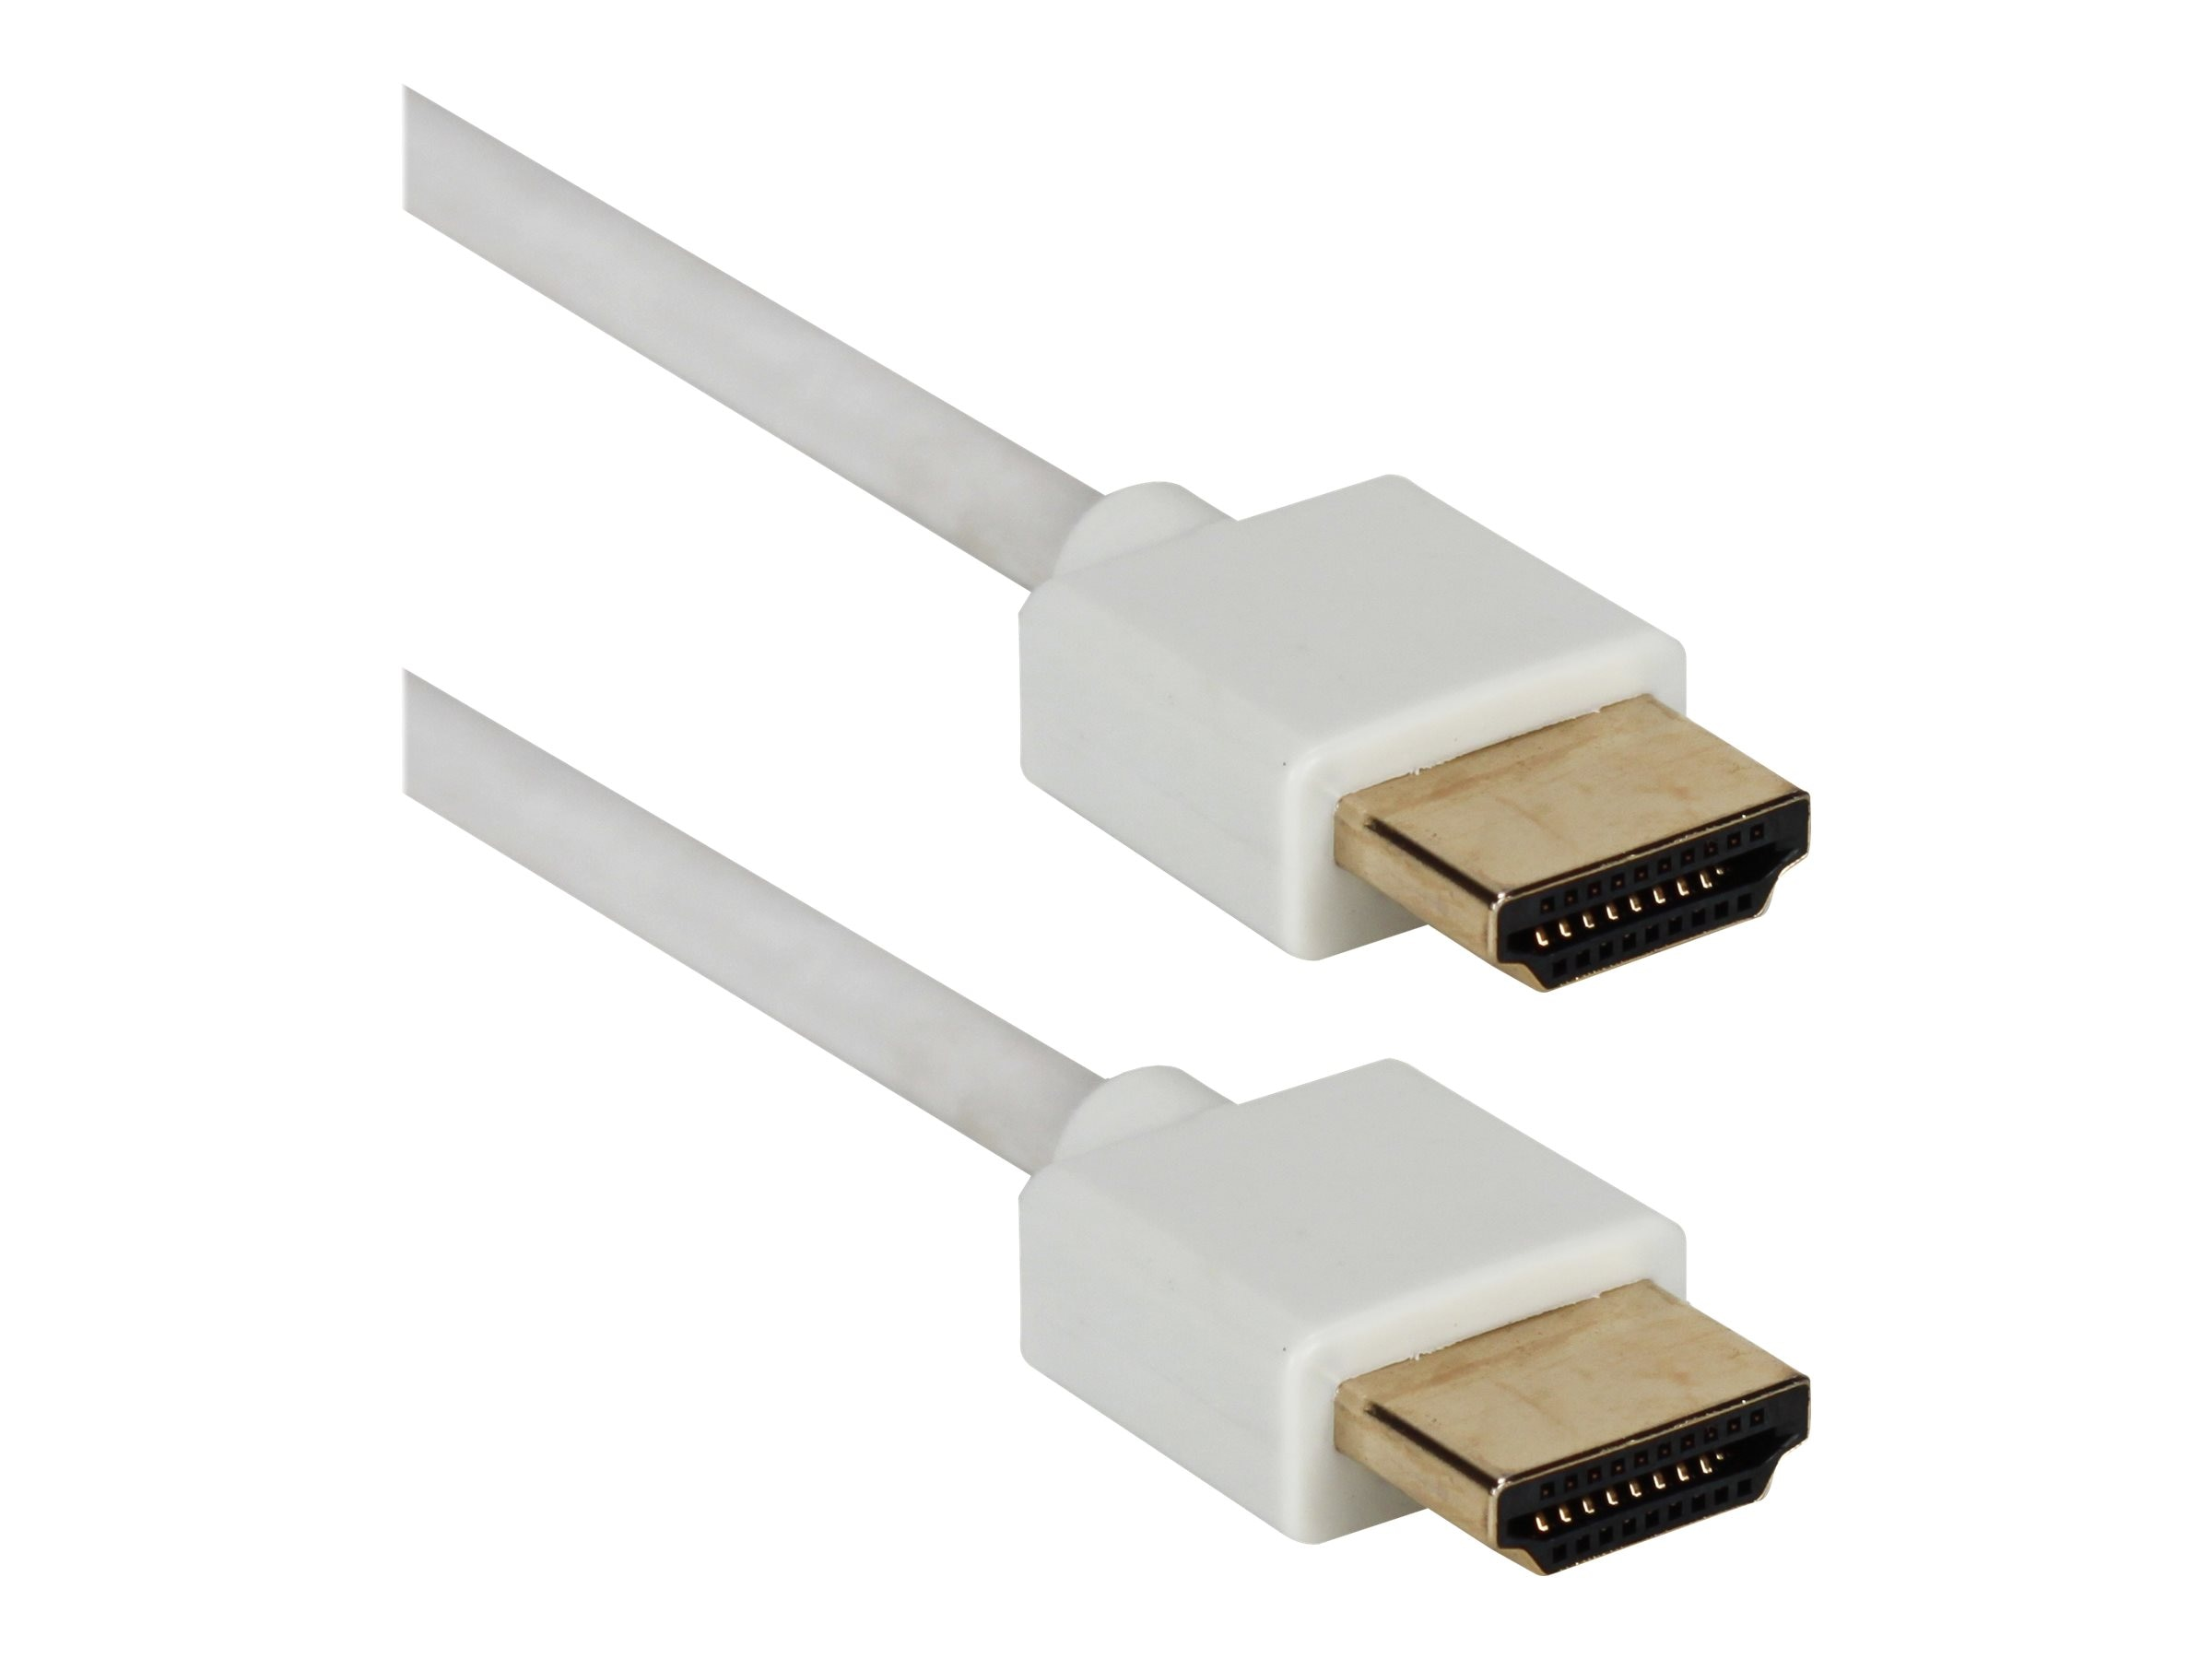 QVS High Speed HDMI Ultra HD 4K HDMI M M Cable with Ethernet, White, 6ft, HDT-6FW